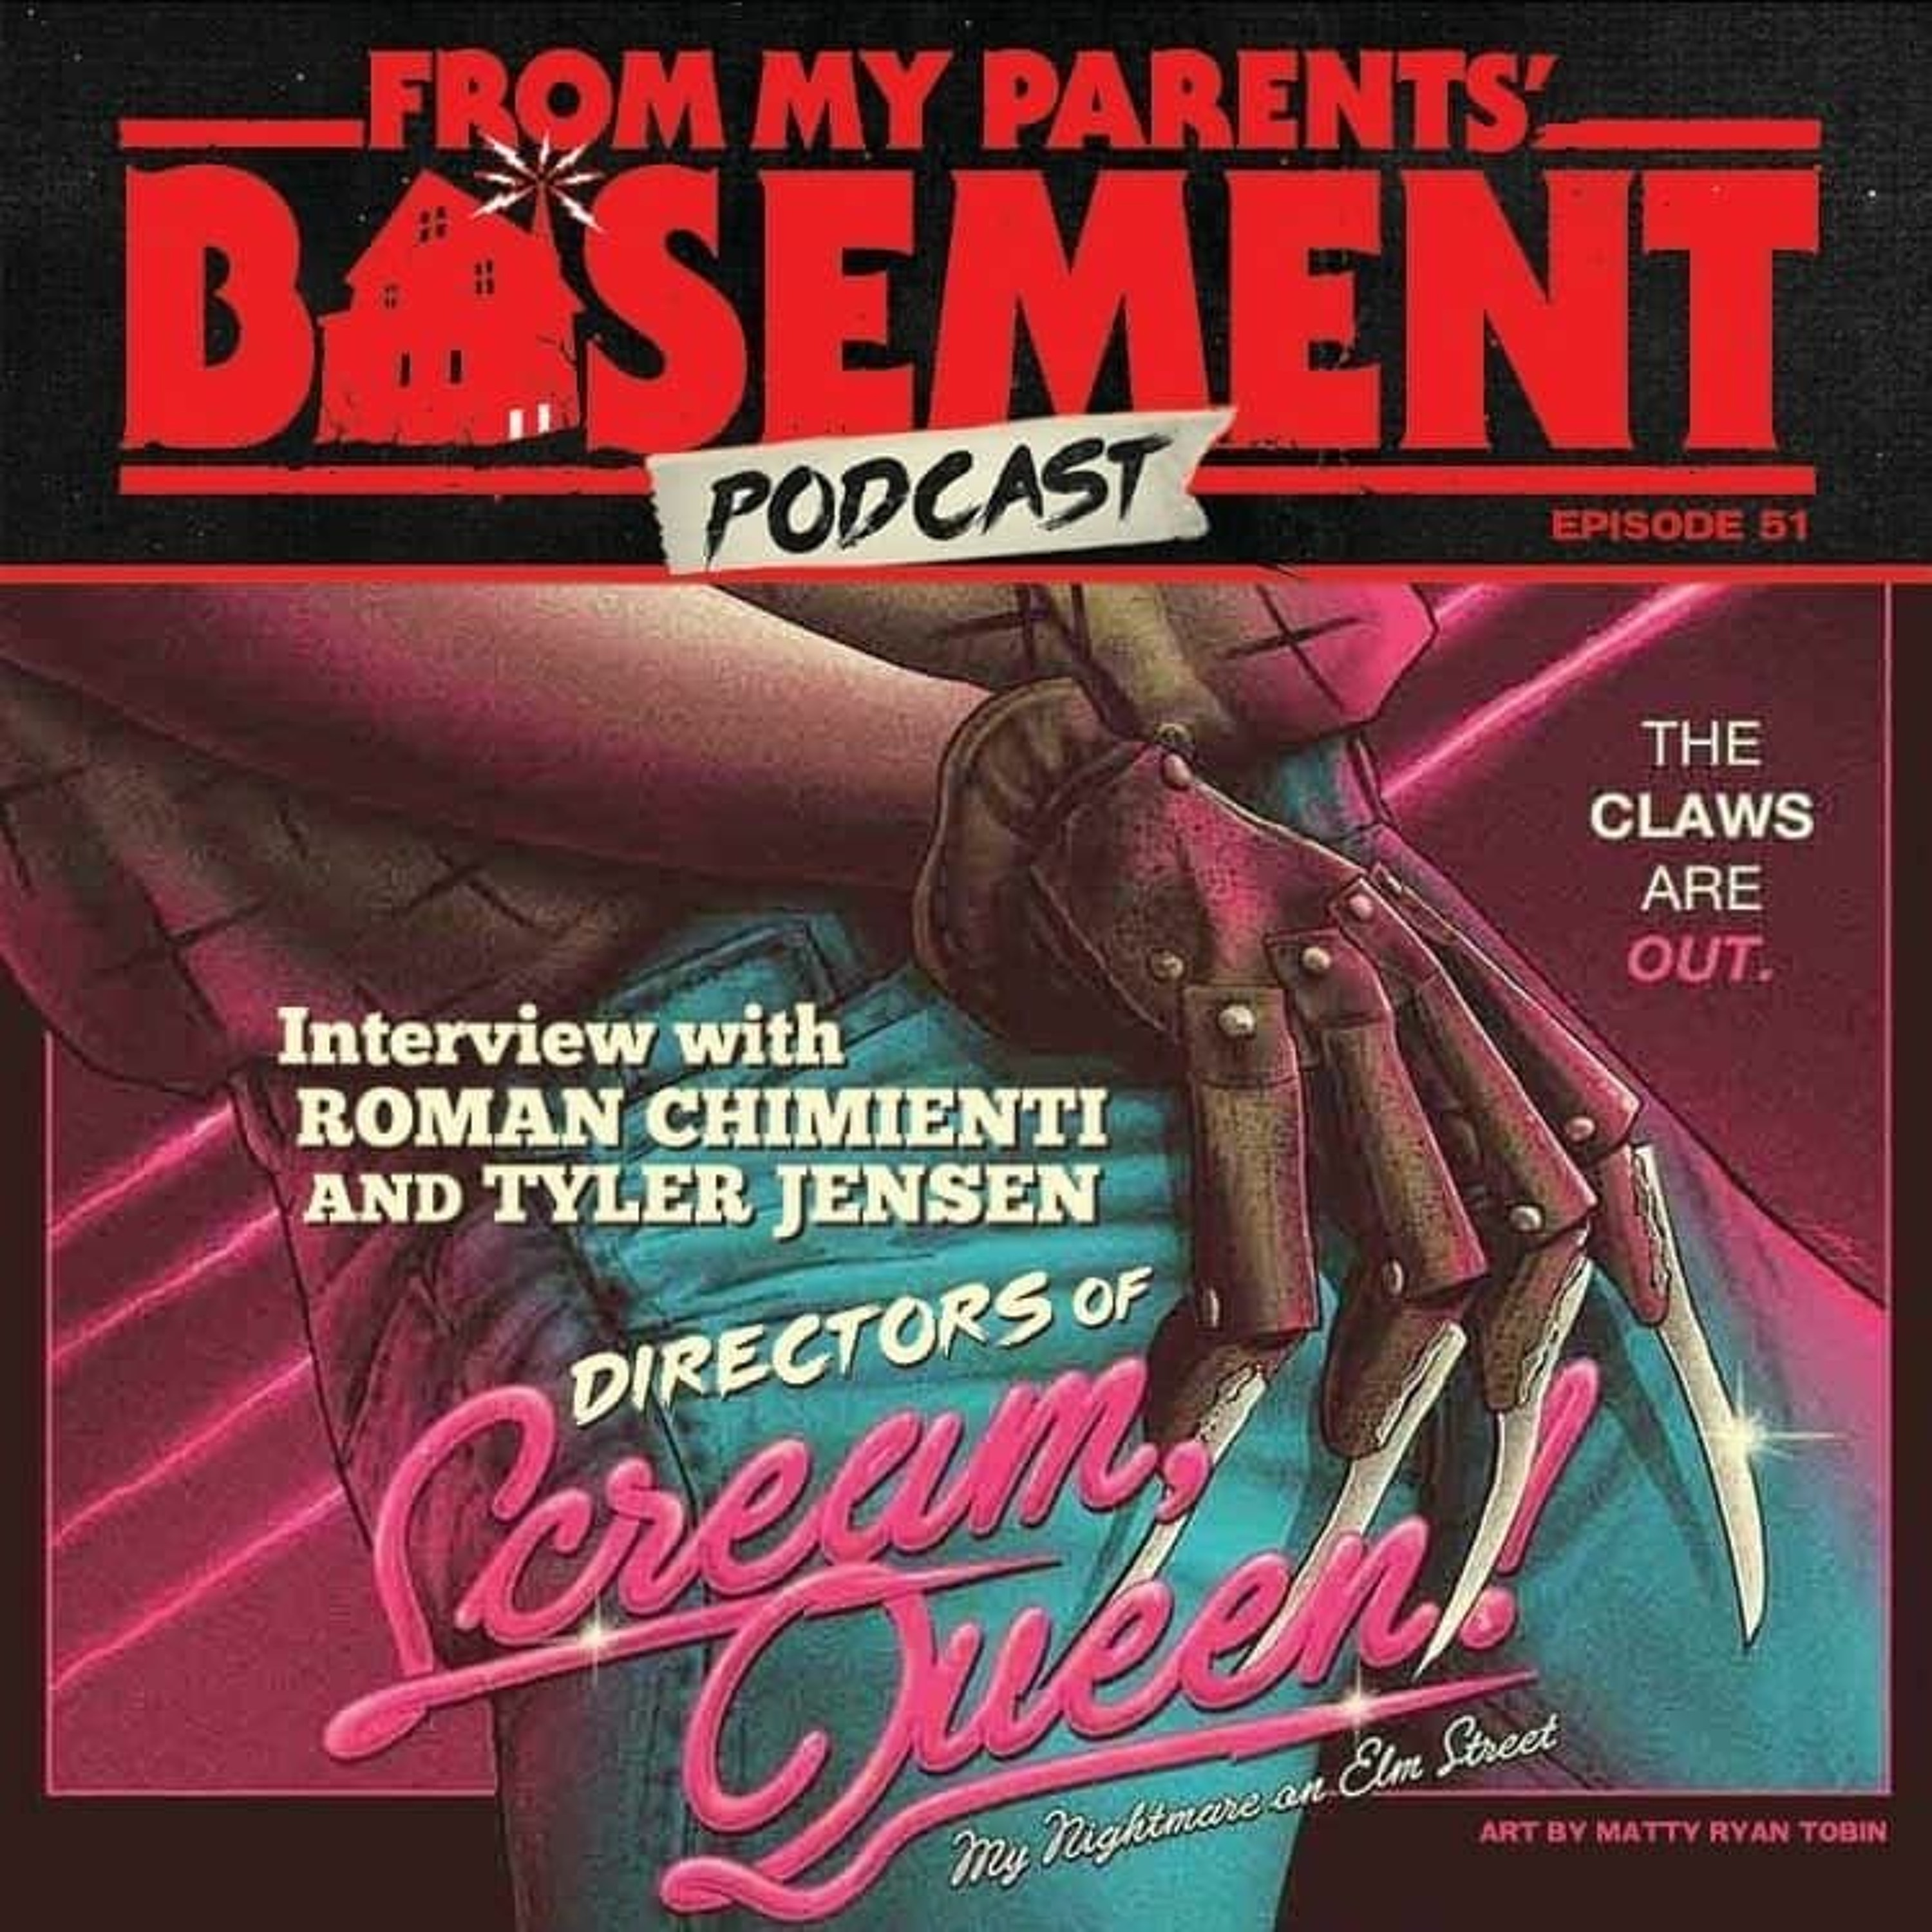 FMPB51: Guests Roman Chimienti and Tyler Jensen - Filmmakers of Scream, Queen! (2020)